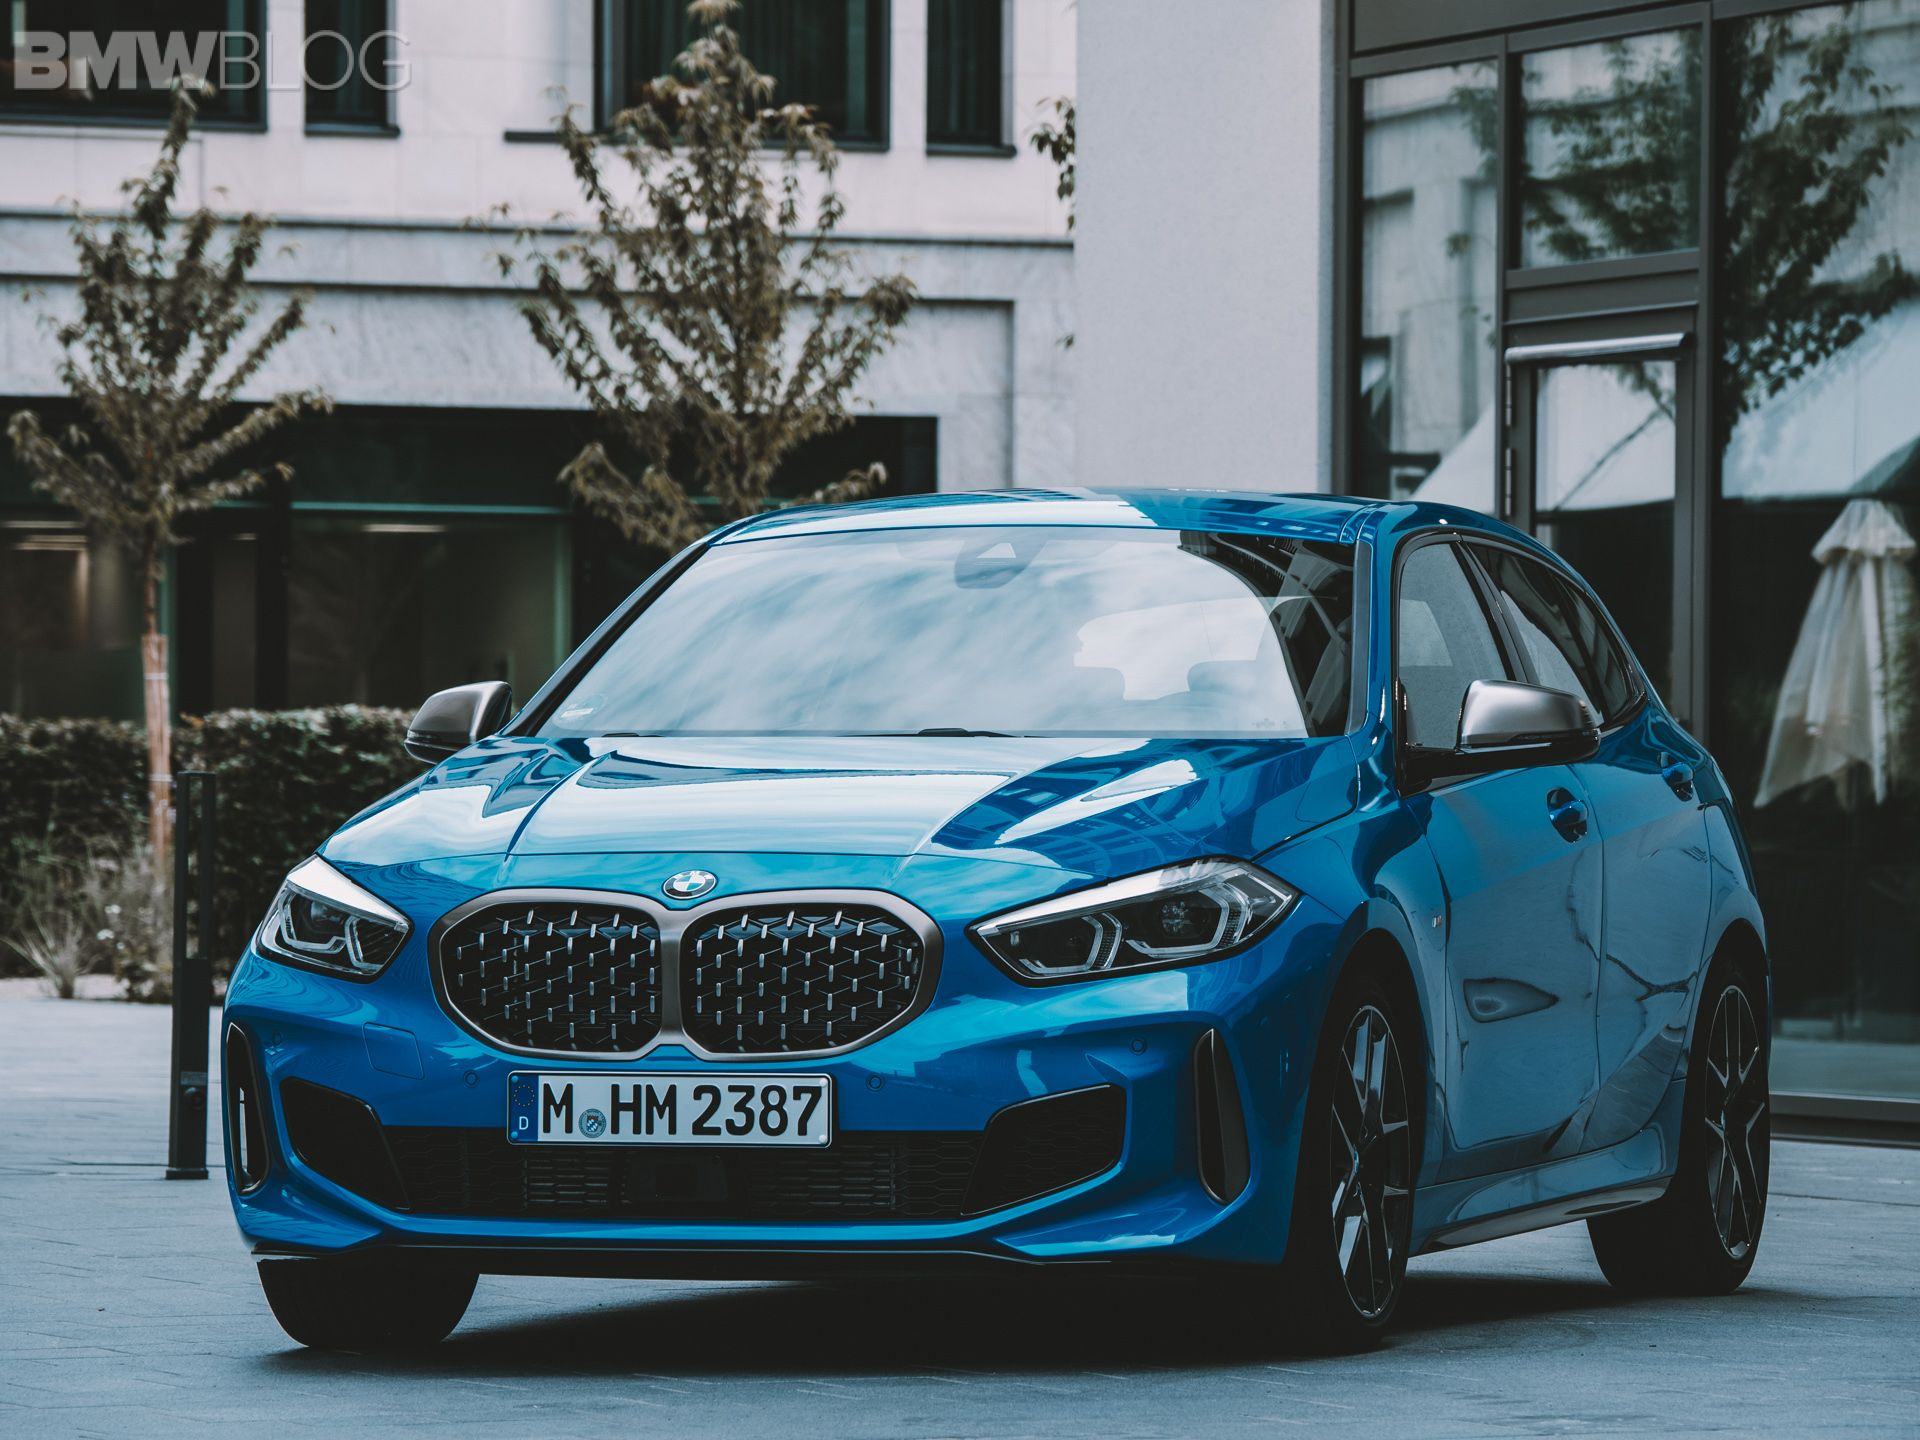 Bmw M135i Will Remain The Hottest 1 Series Despite Hotter